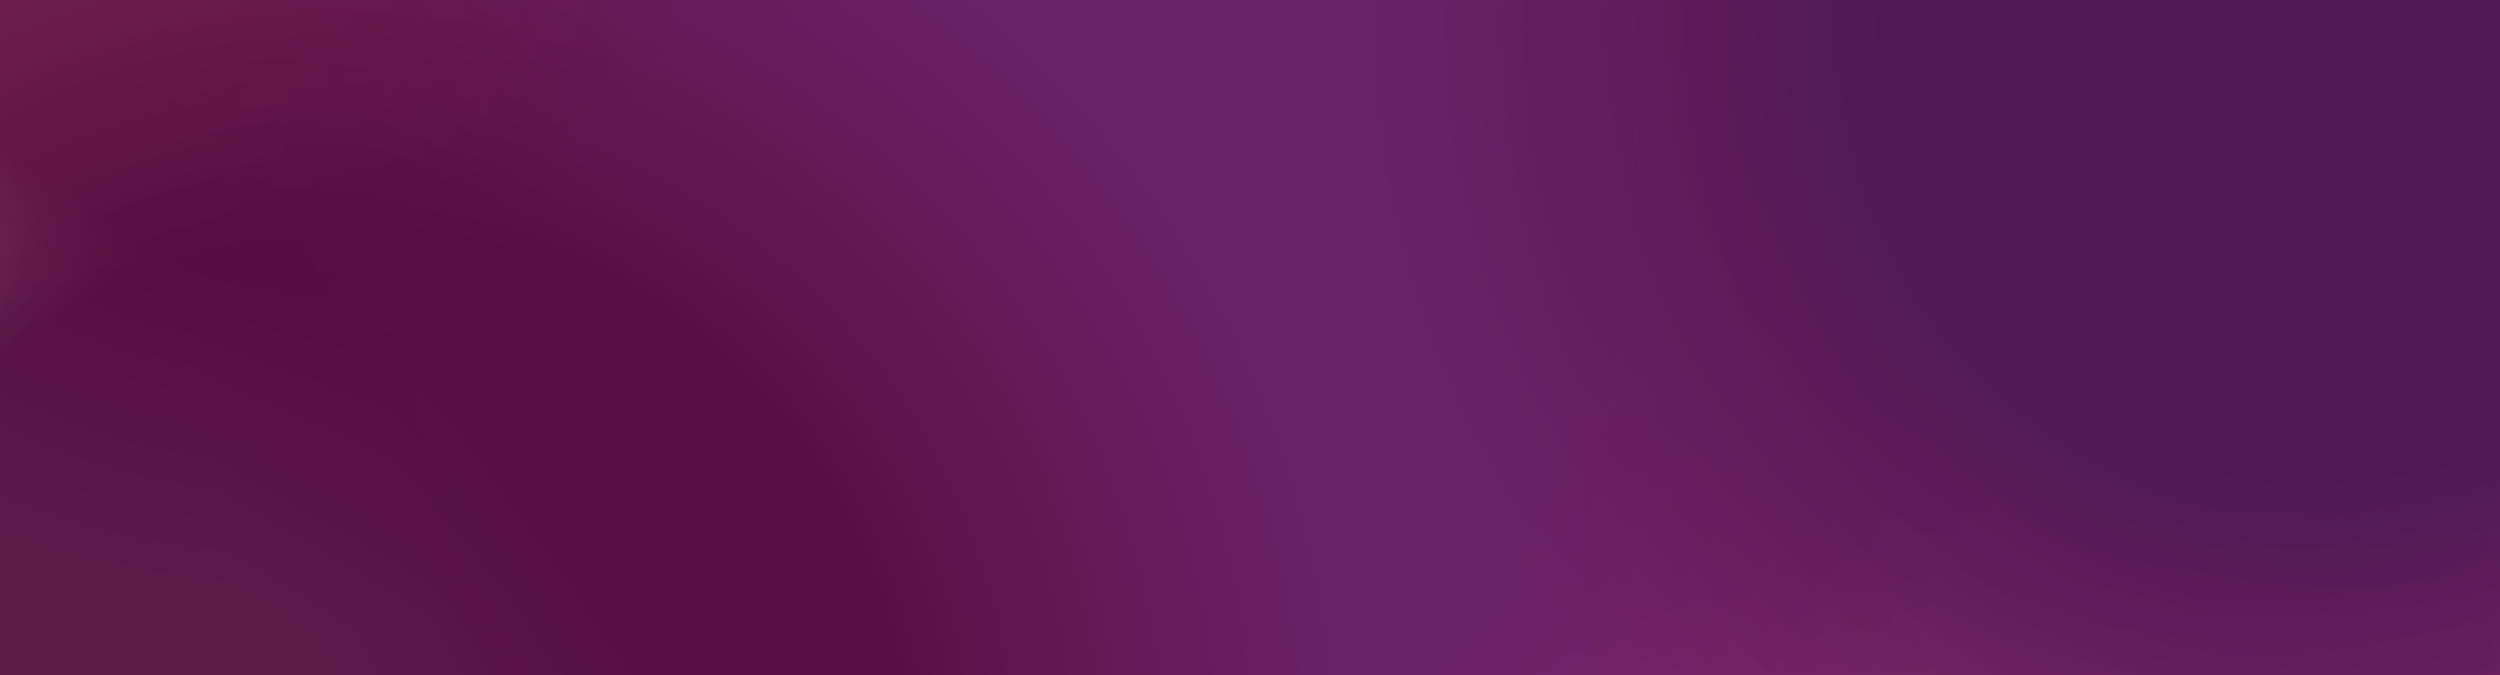 purple-strip.png